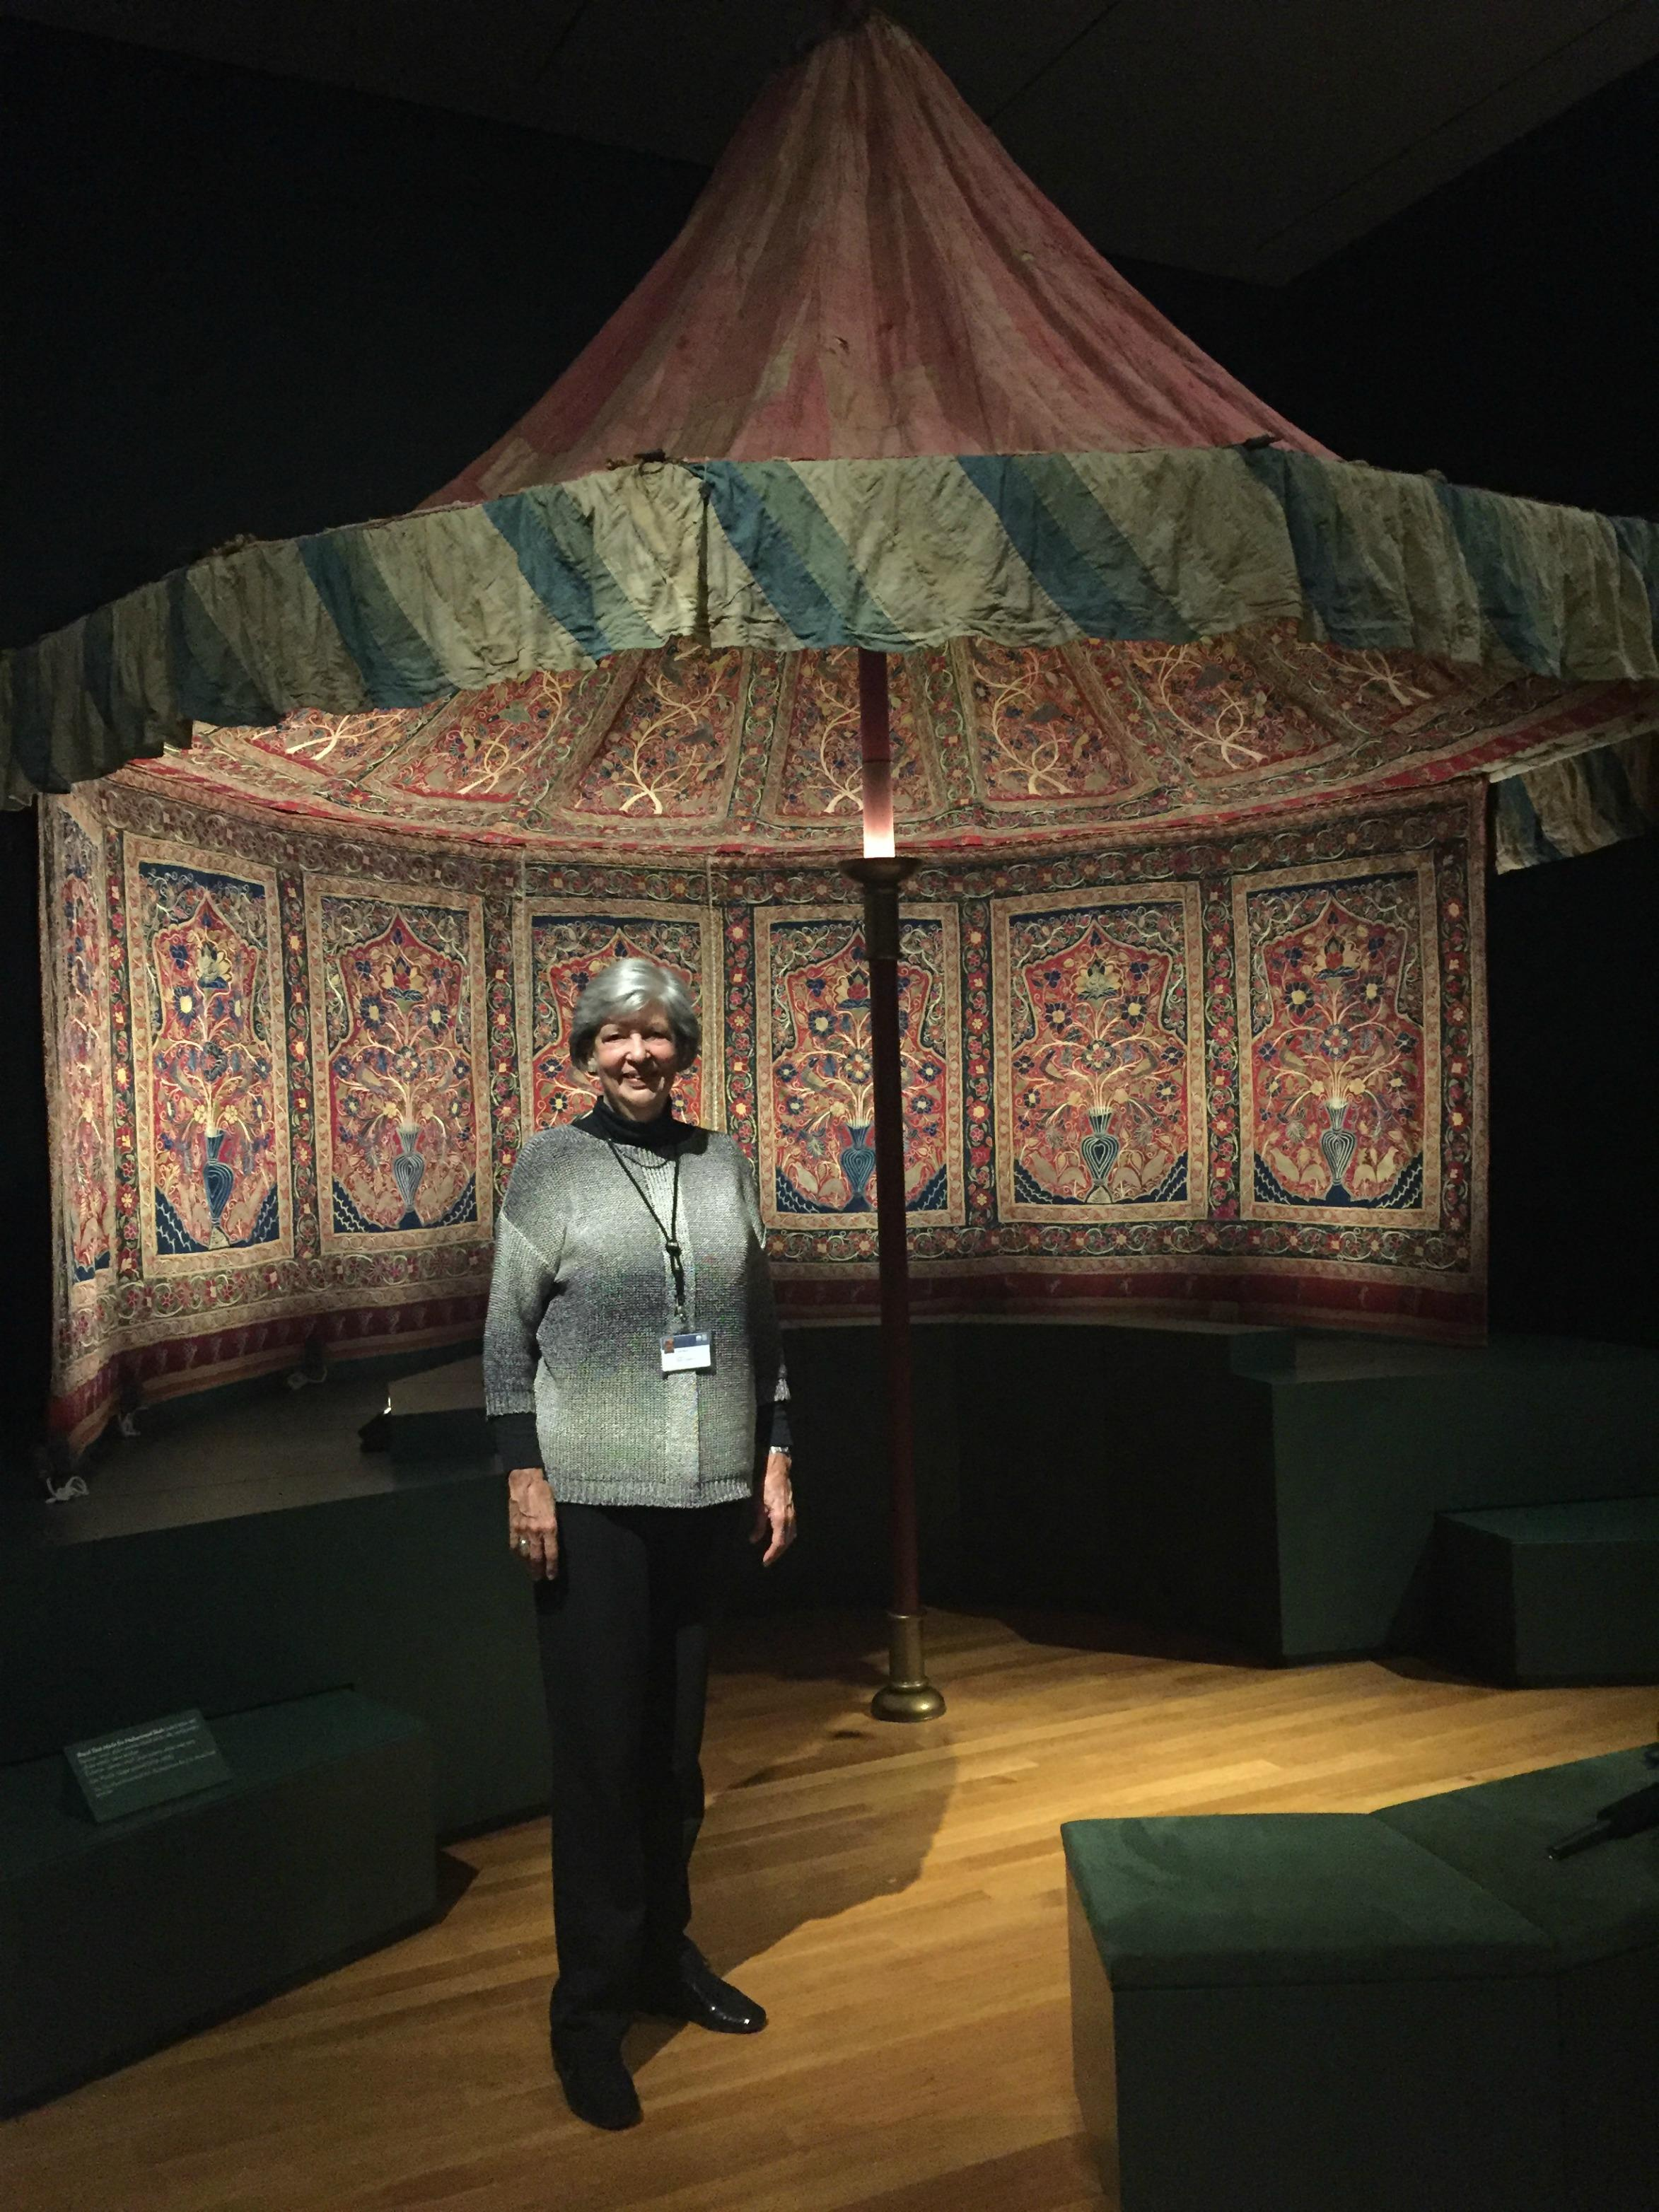 Louise Mackie is curator of textiles and Islamic art at the Cleveland Museum of Art. & Opening a Tent Flap for a Unique View of Middle Eastern Culture | WKSU